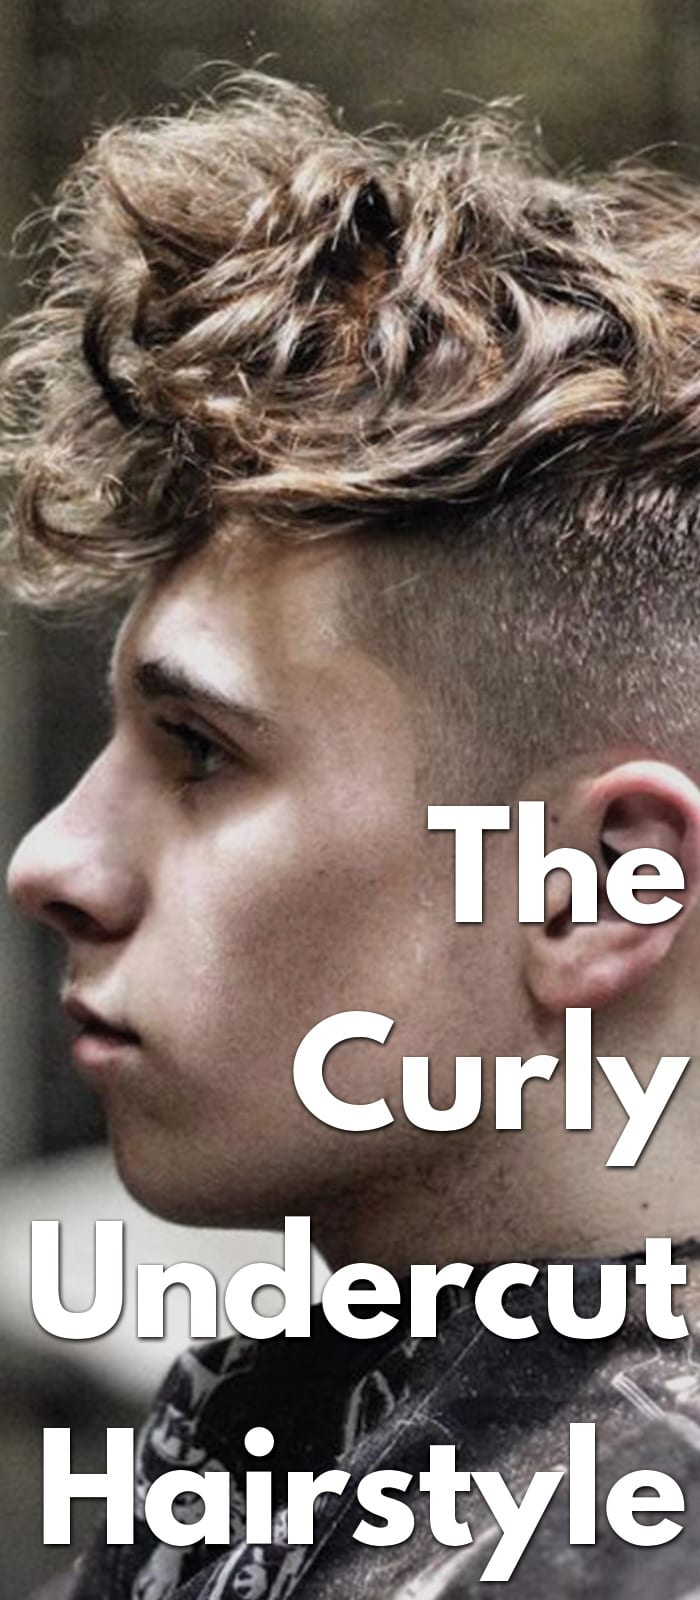 The Curly Undercut Hairstyle